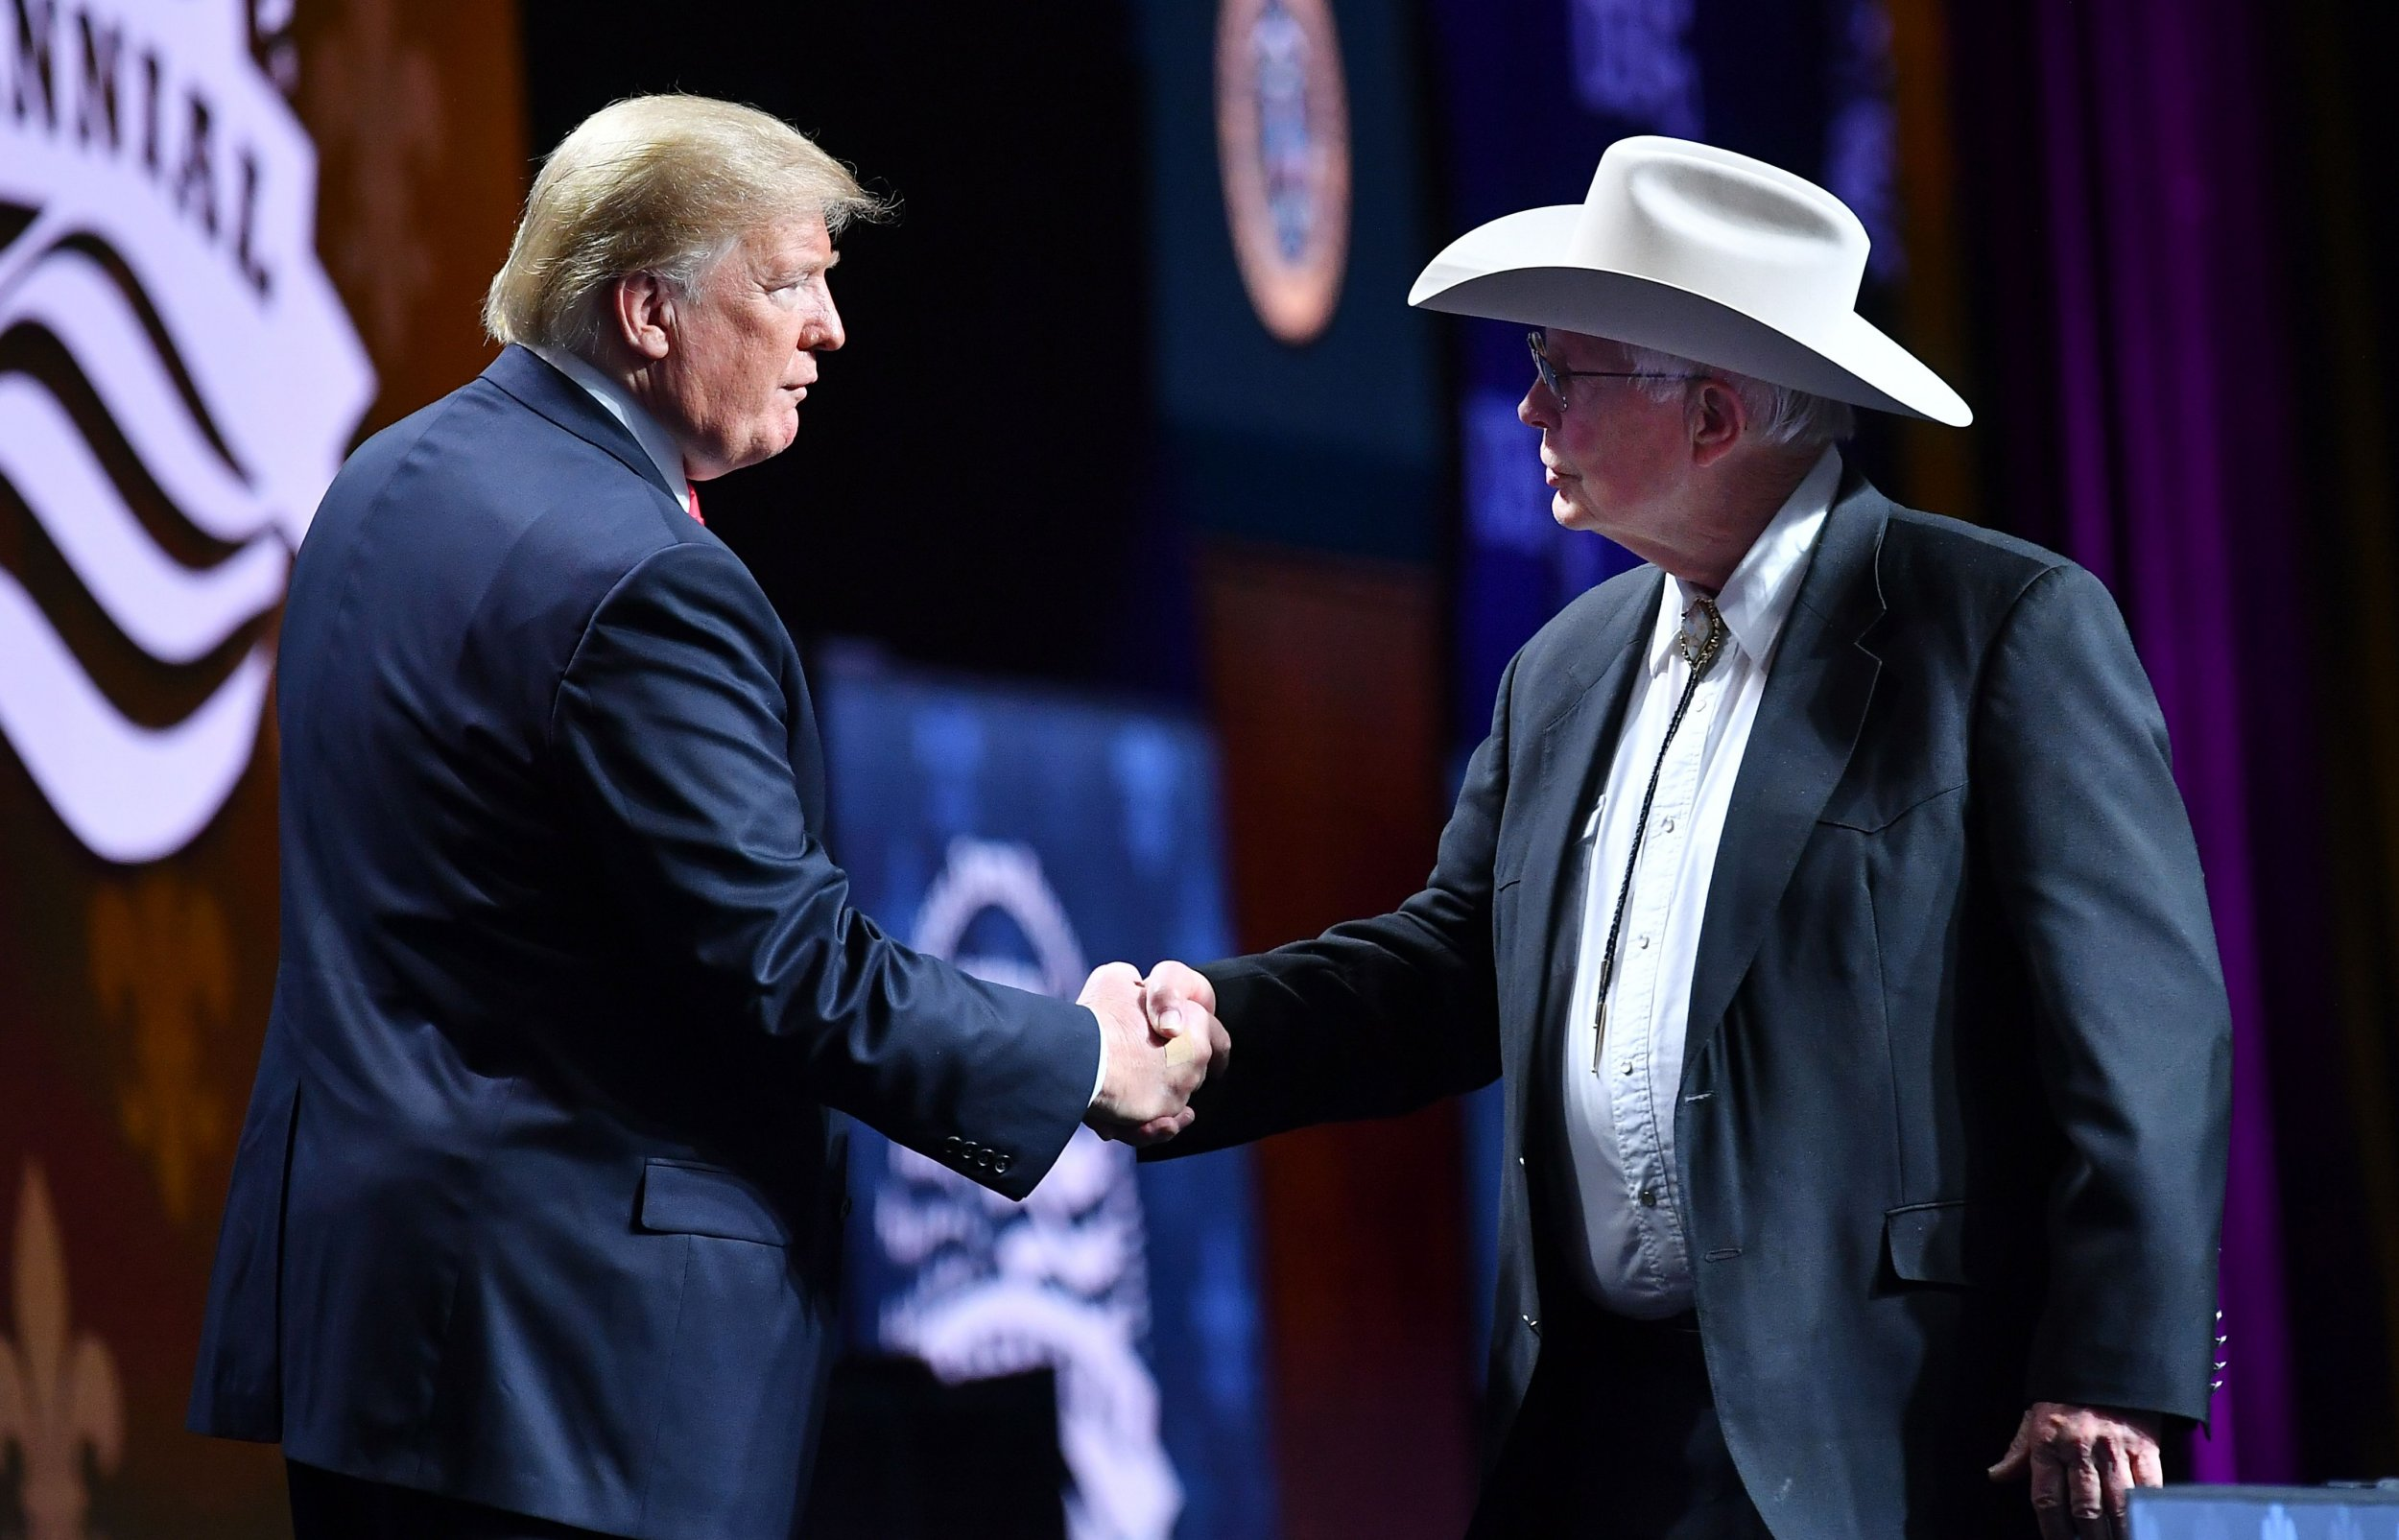 Trump with Farmer